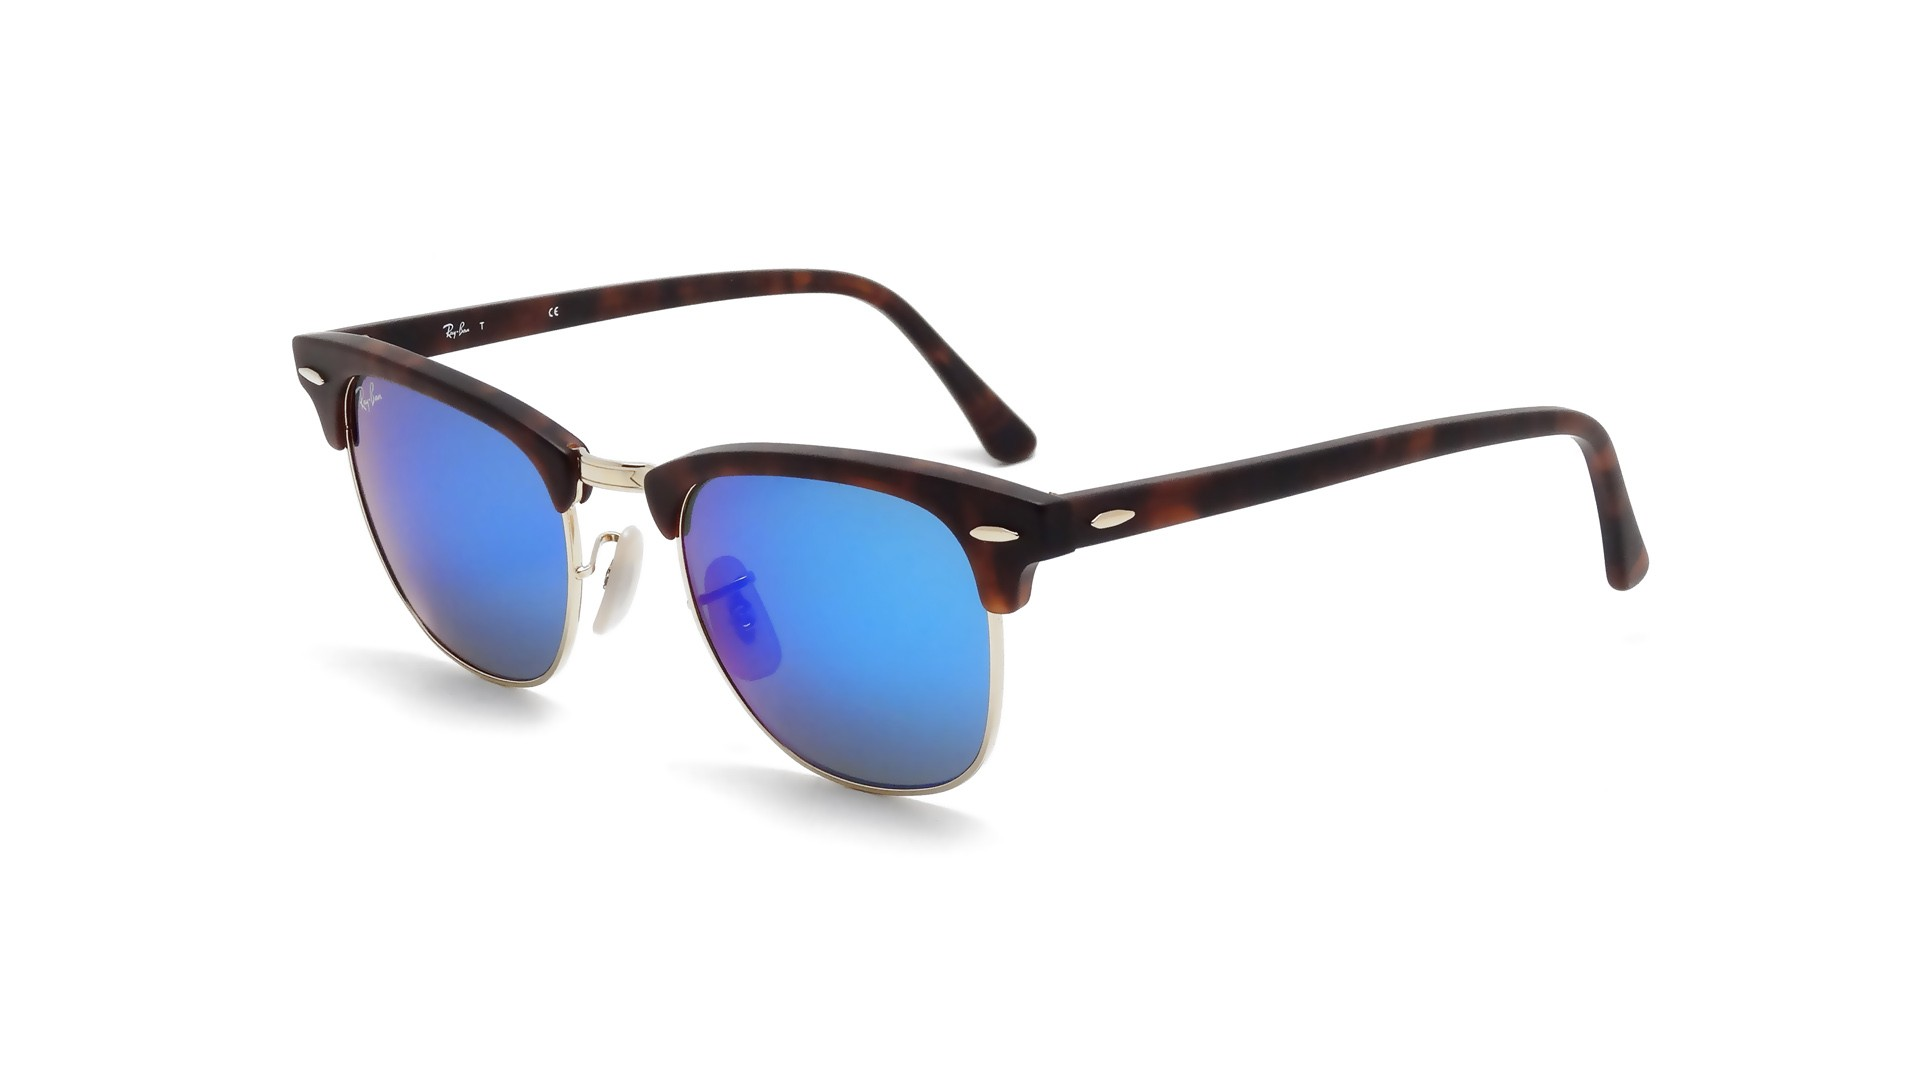 4aed769759 Sunglasses Ray-Ban Clubmaster Tortoise Matte Flash Lenses RB3016 1145 17  49-21 Small Mirror